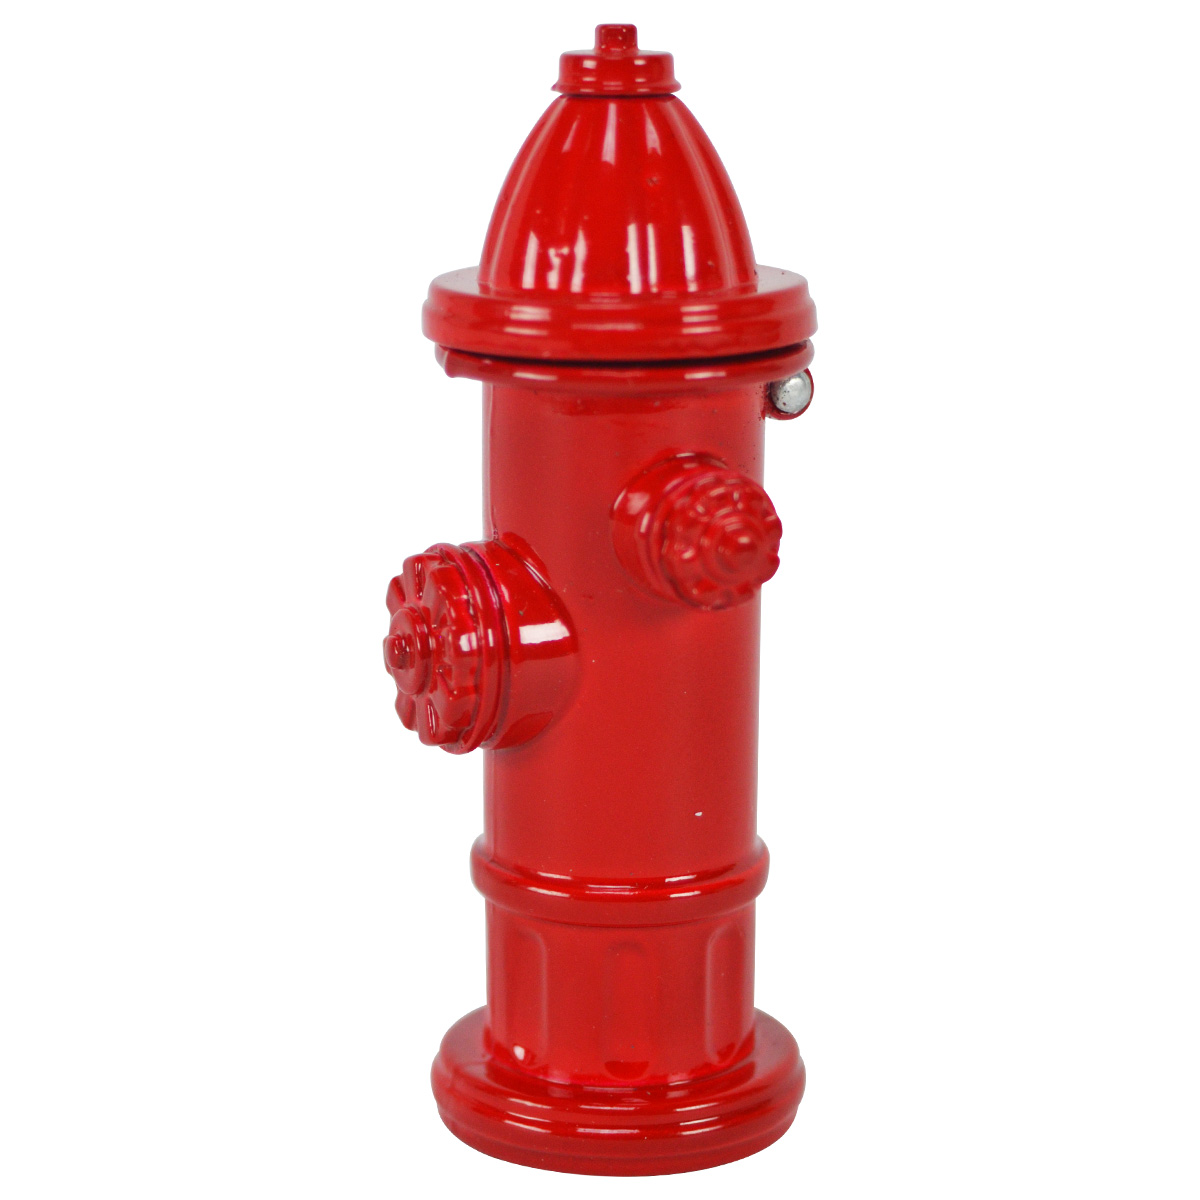 Red Fire Hydrant Miniature Die Cast Pencil Sharpener Fireman Firefighter FD Gift